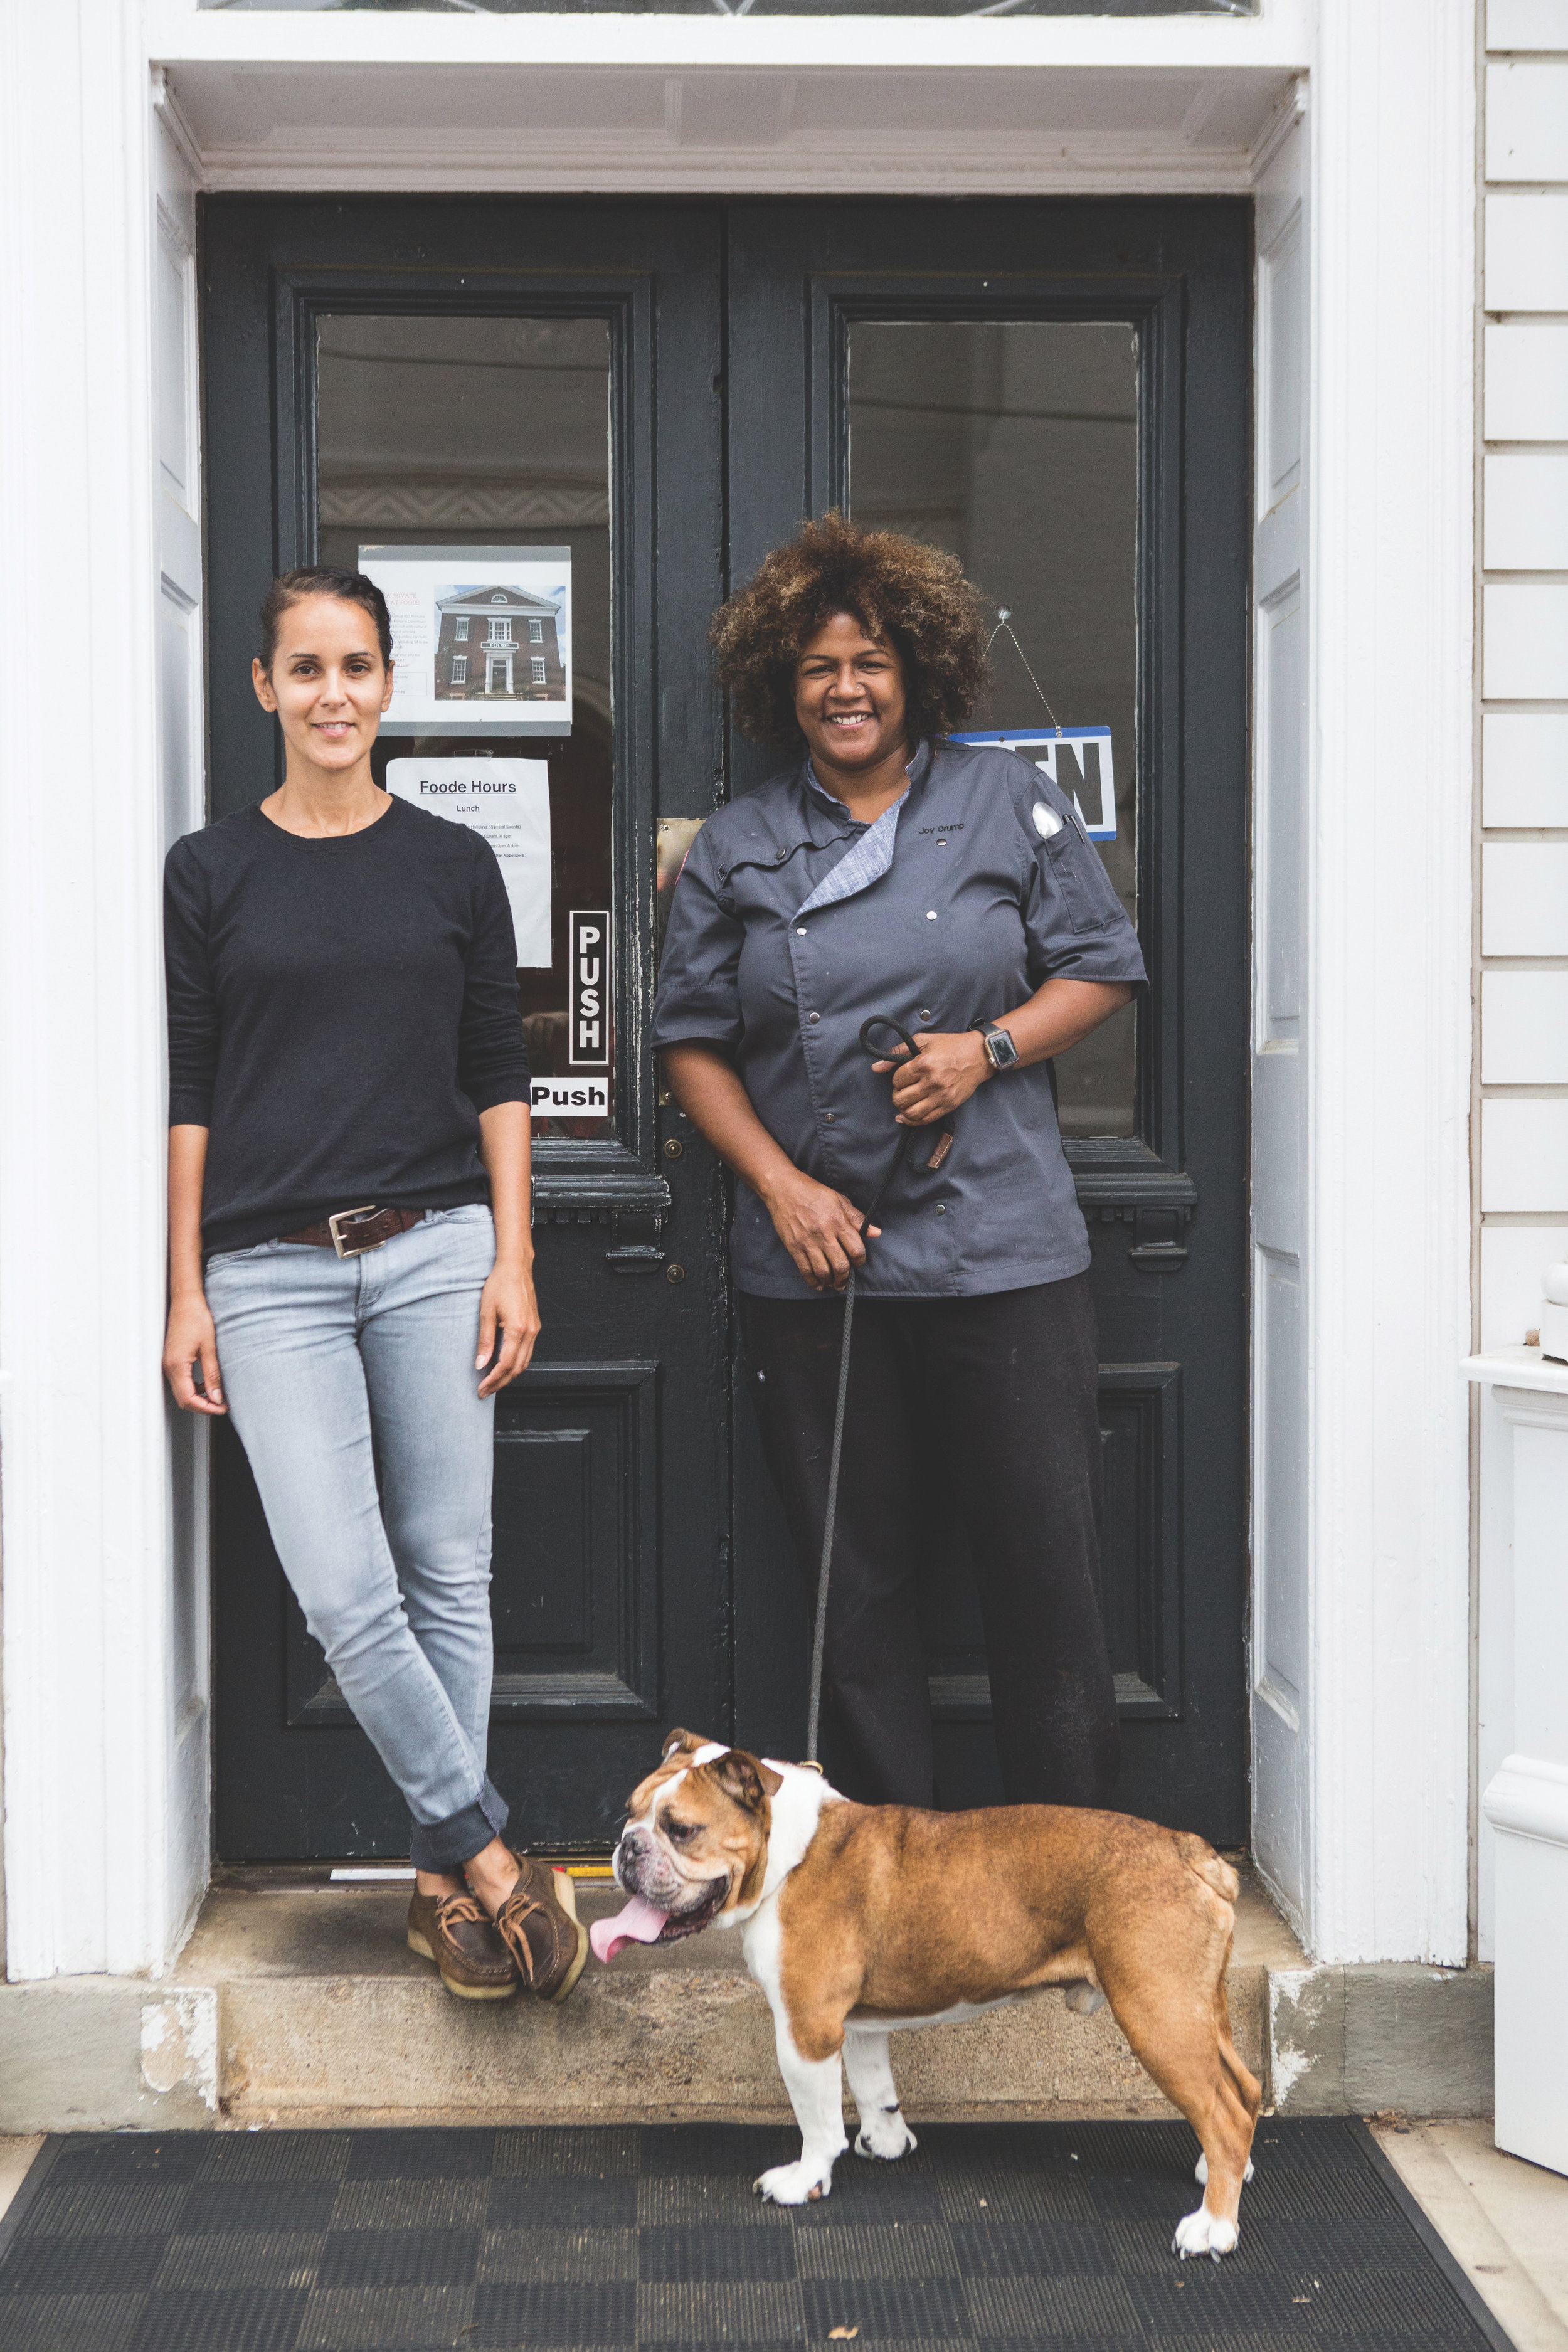 Beth Black, Joy Crump and Chuck, in front of their restaurant